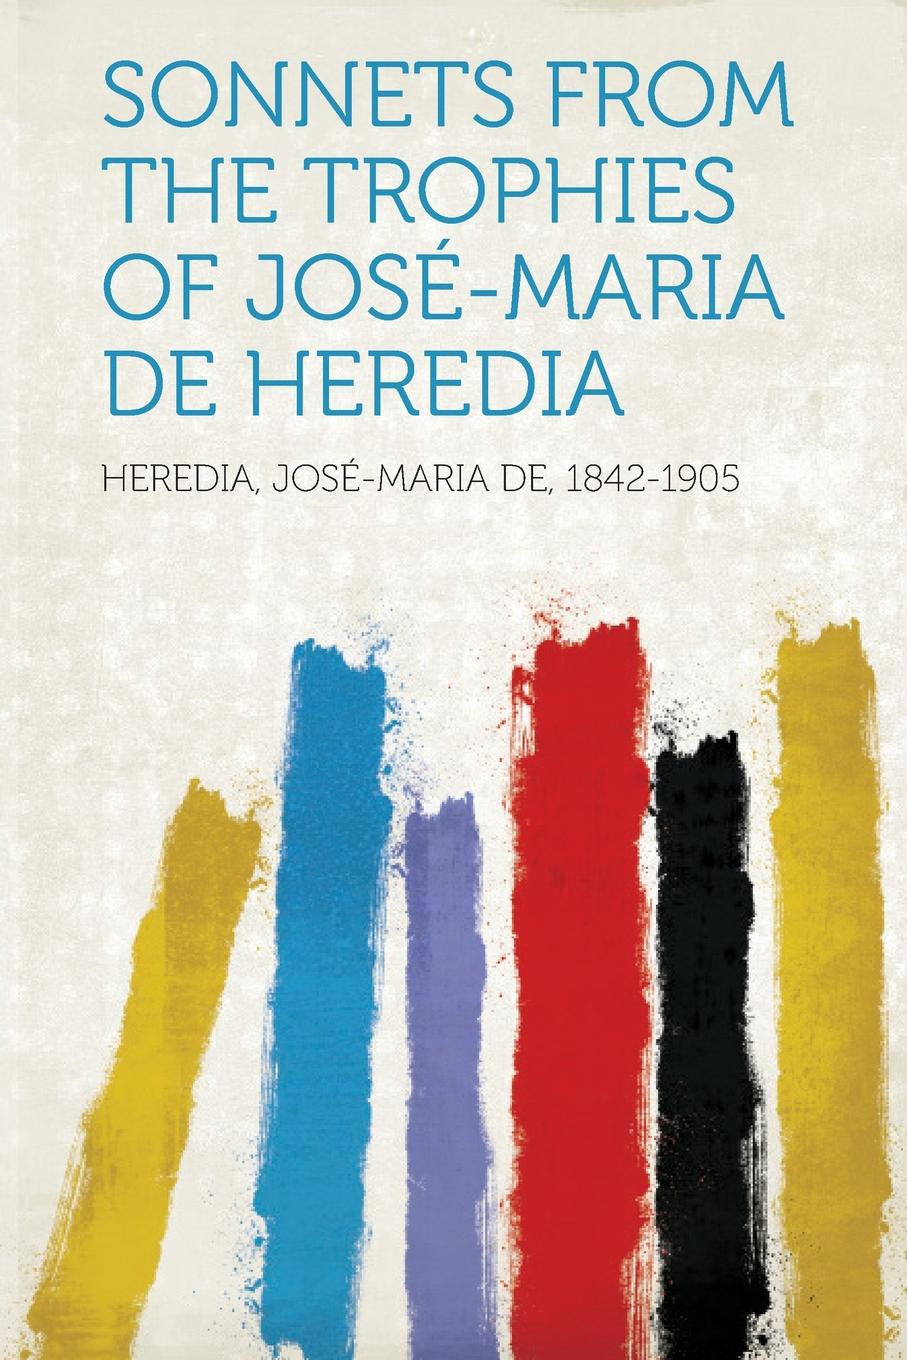 Heredia Jose-Maria De 1842-1905 Sonnets from the Trophies of Jose-Maria de Heredia